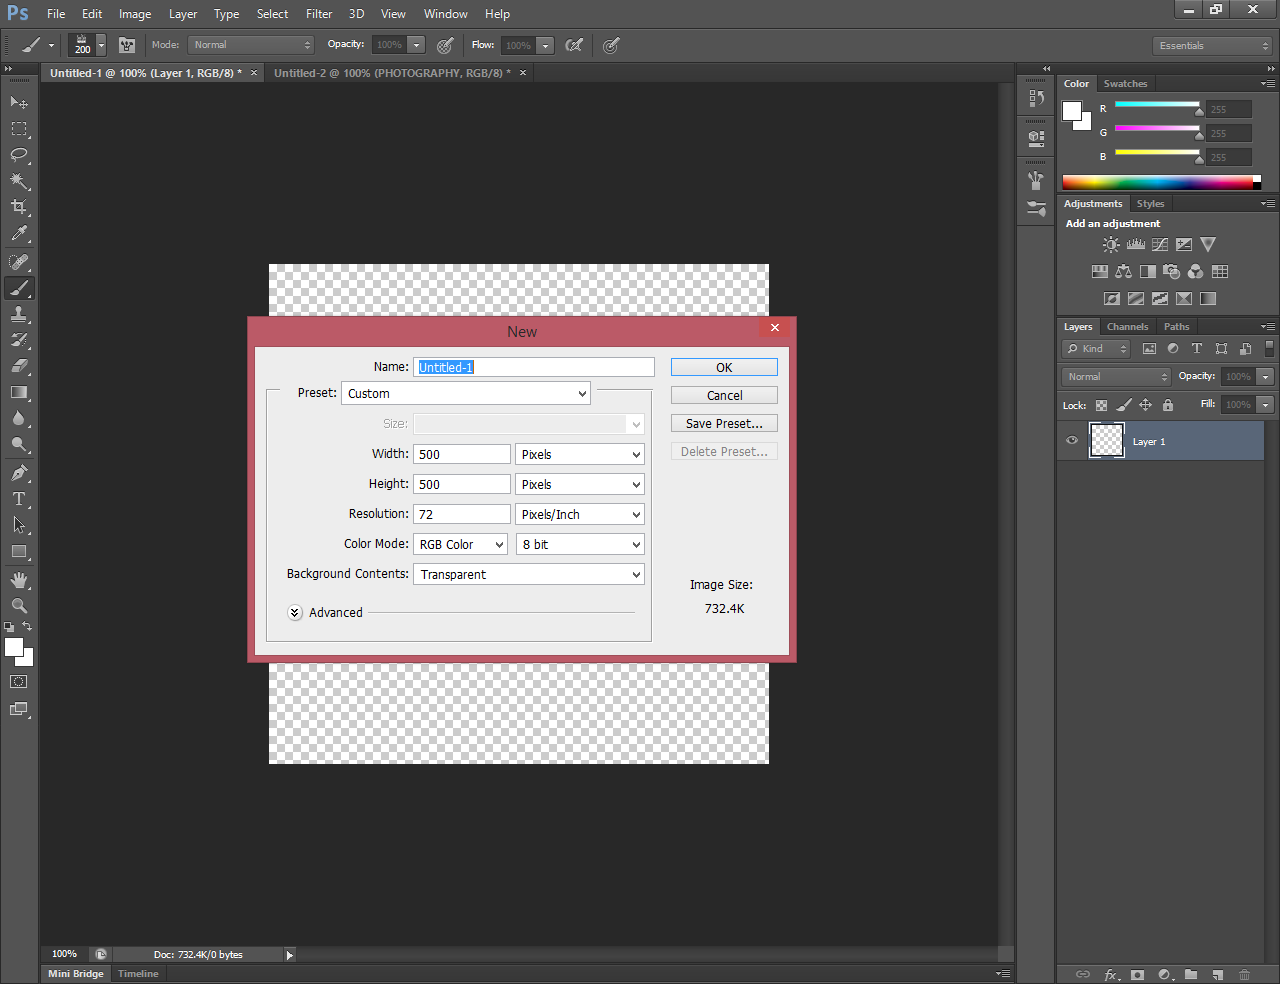 Photoshop open with a pop-up declaring that the user is creating a new document and needs to select some options